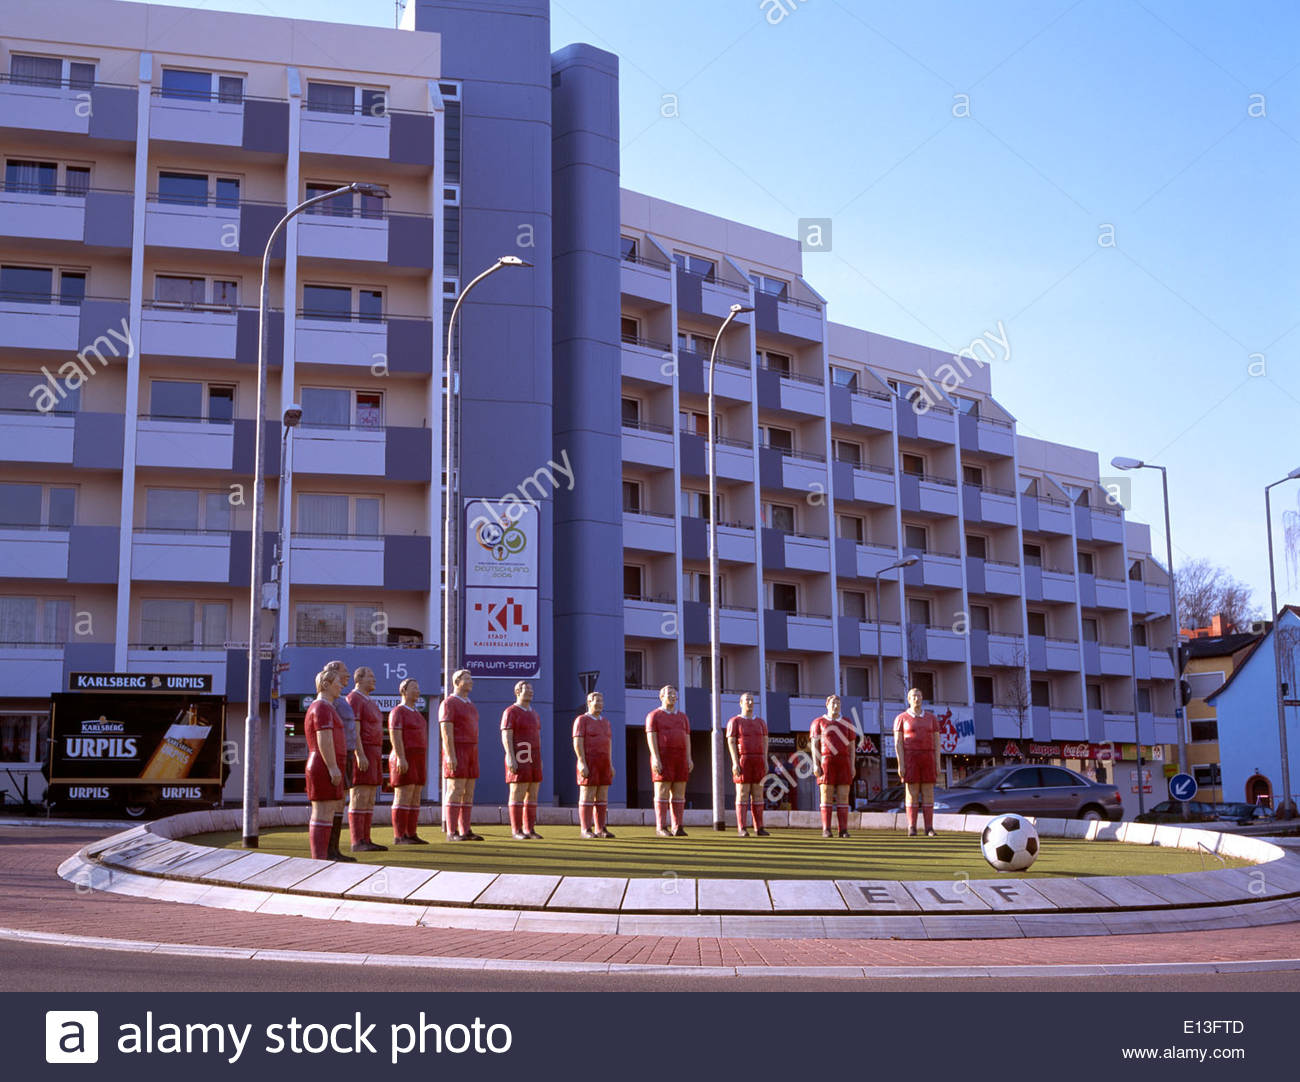 Eleven Freunde football players - all white, in red strip, as statues in the middle of a roundabout in Kaiserslautern, Germany. - Stock Image